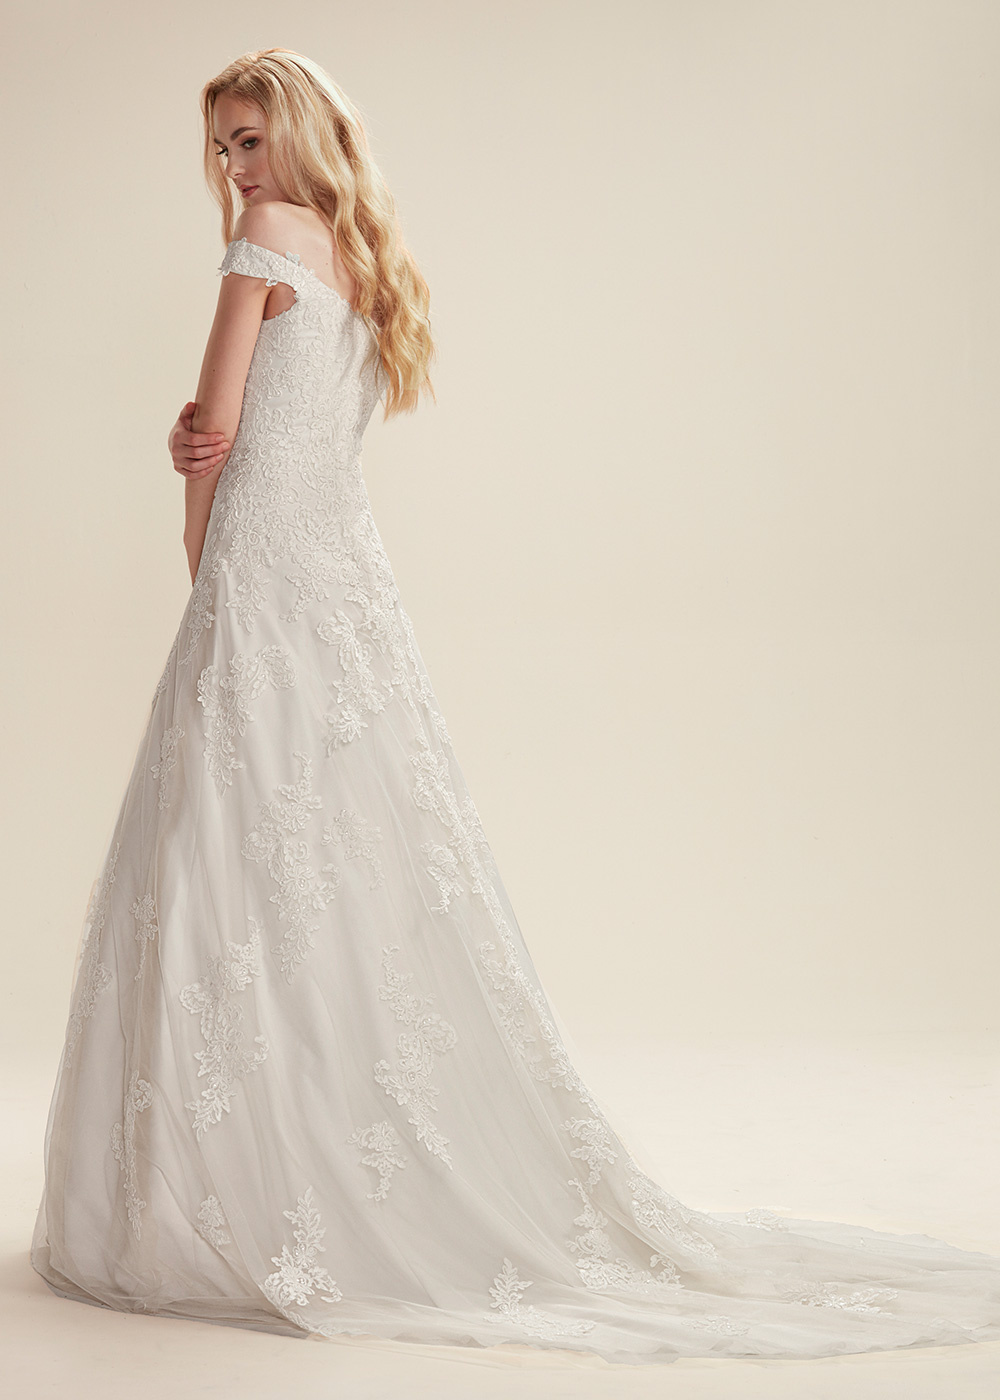 TH-Aaliyah TH Wedding Dresses By Ashdon